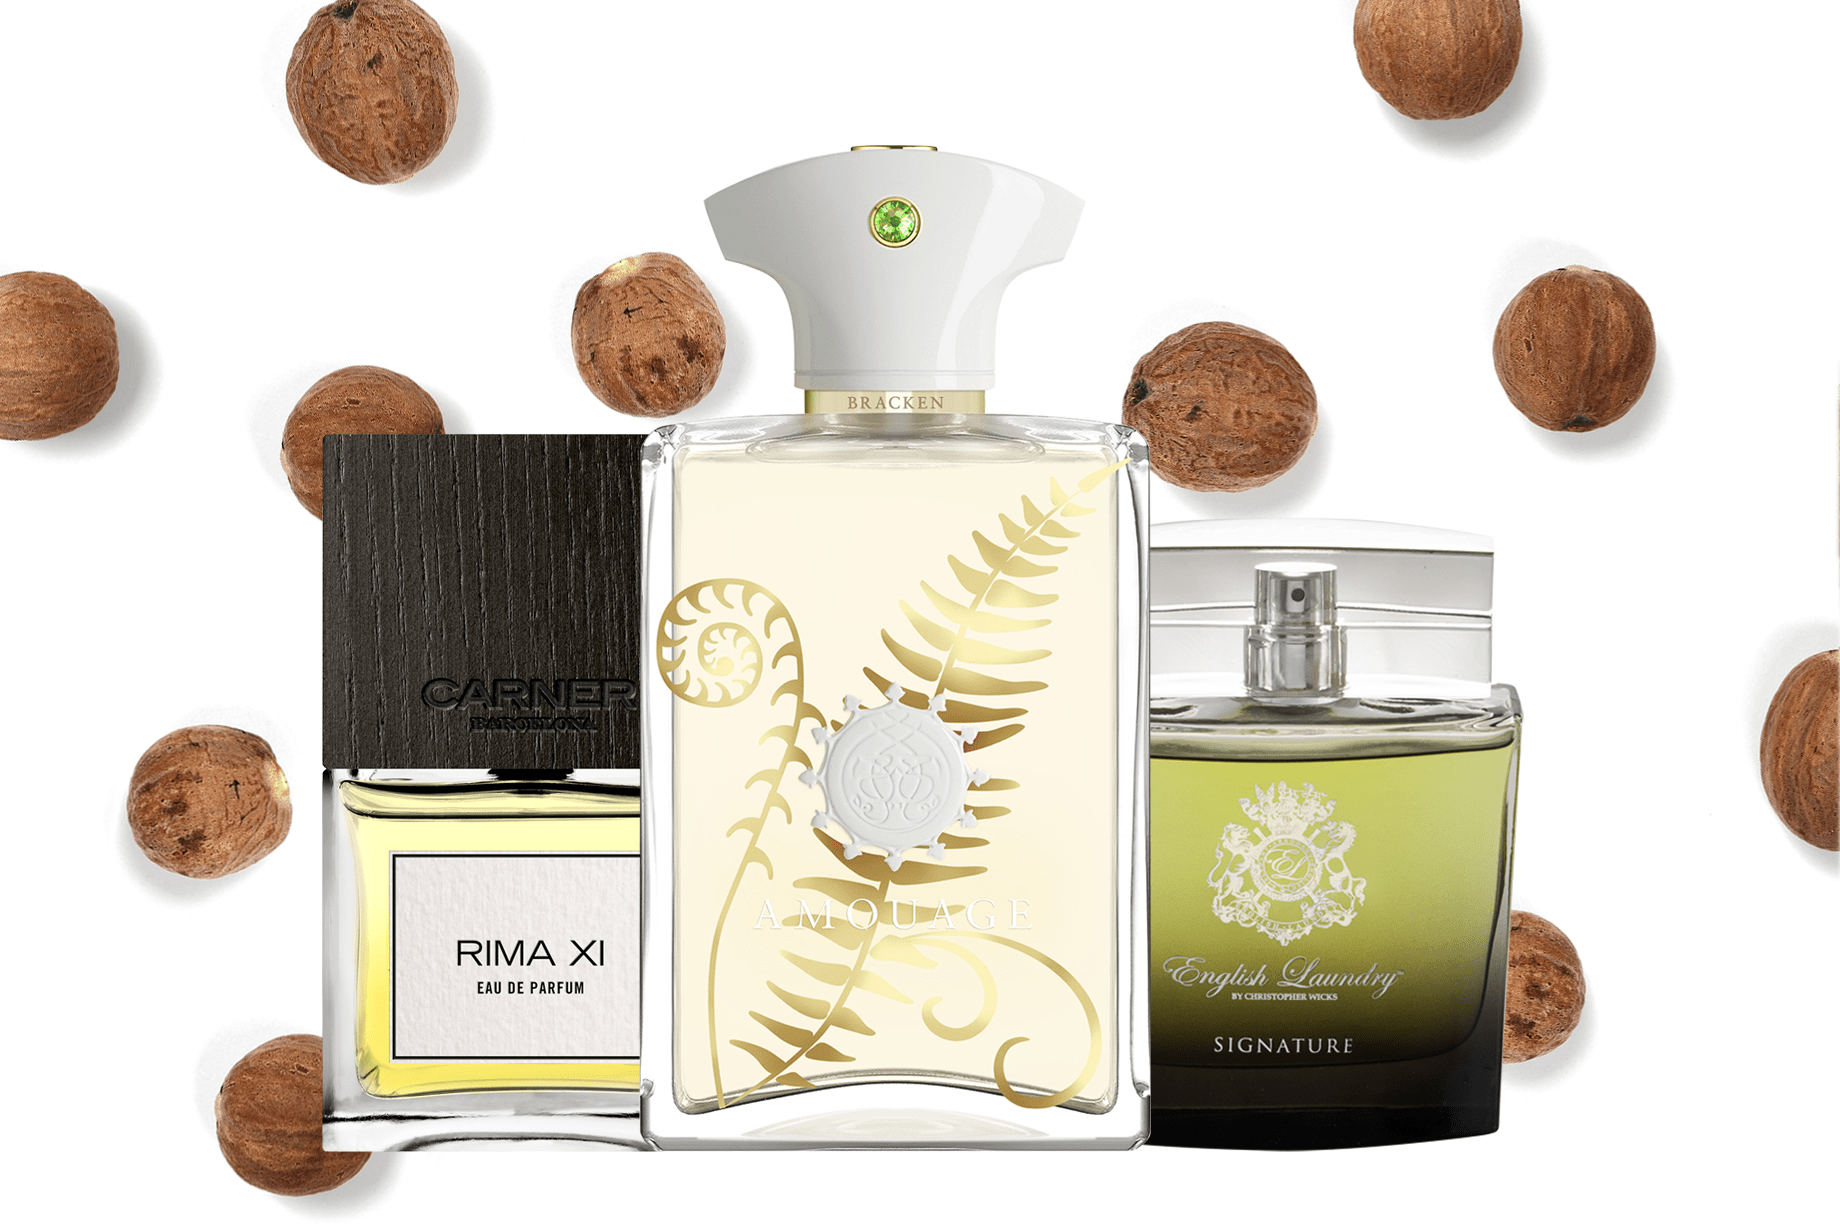 The scent of Christmas joy: Nutmeg